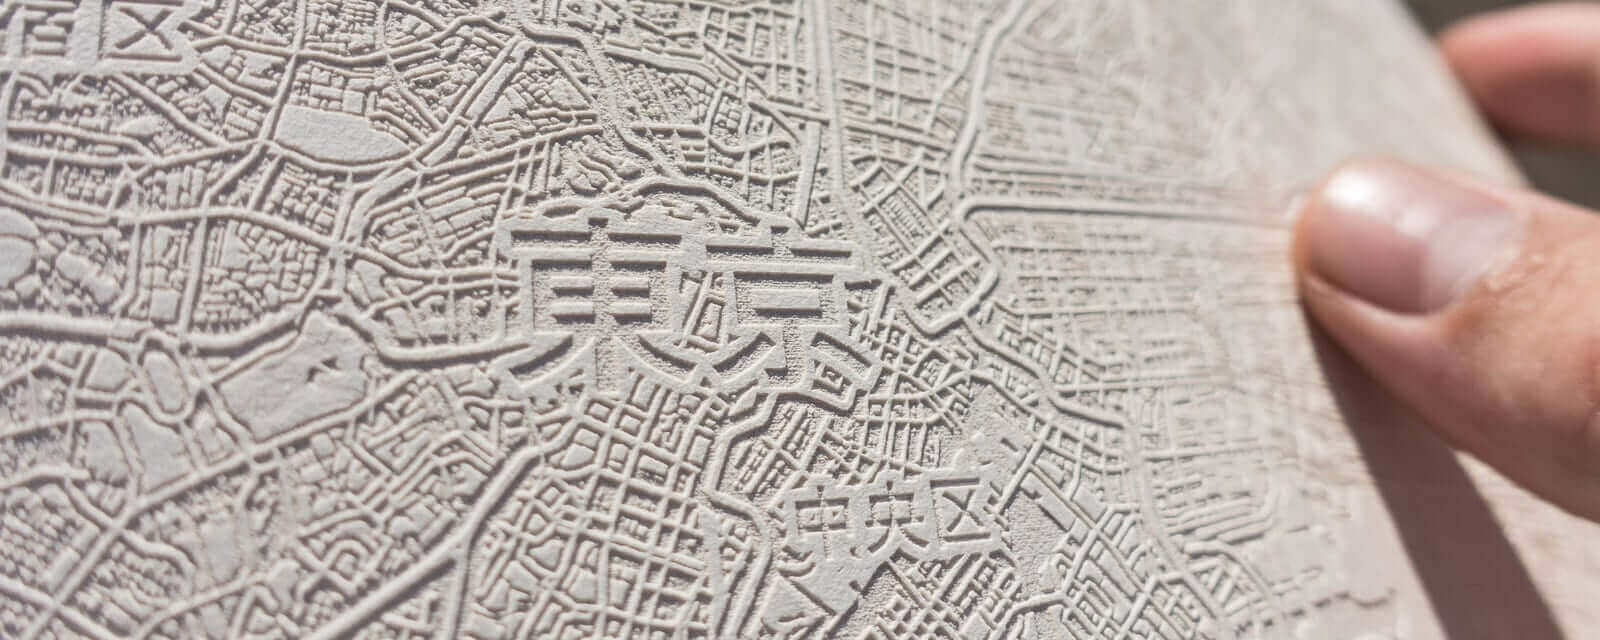 The streets of Tokyo, Japan. Laser engraving in paper.